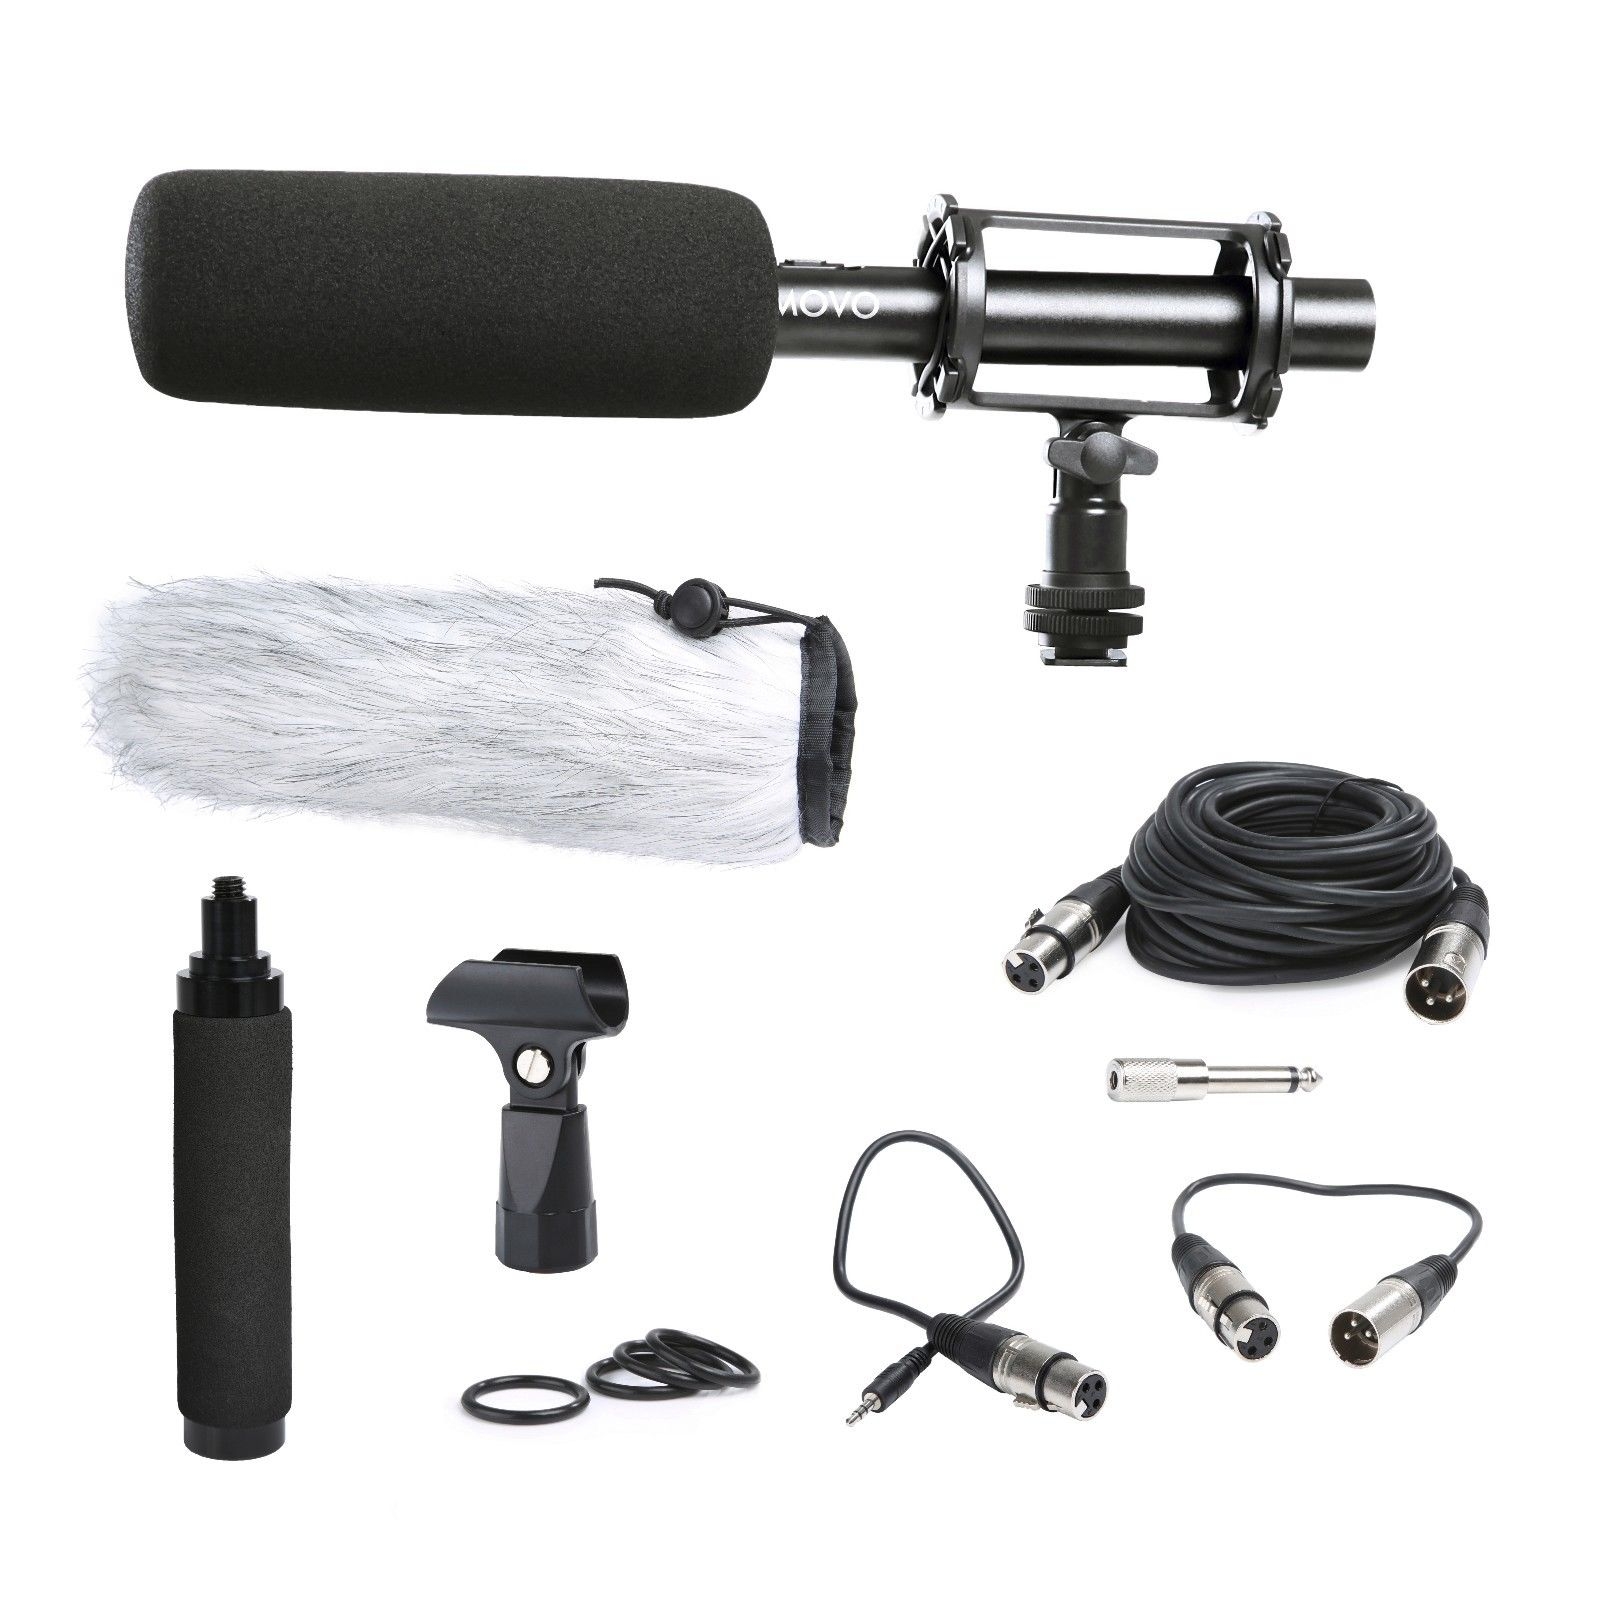 "Movo Photo VXR100 Professional 11"" Supercardioid Condensor Shotgun Video Microphone Kit for DSLR Cameras and Camcorders"